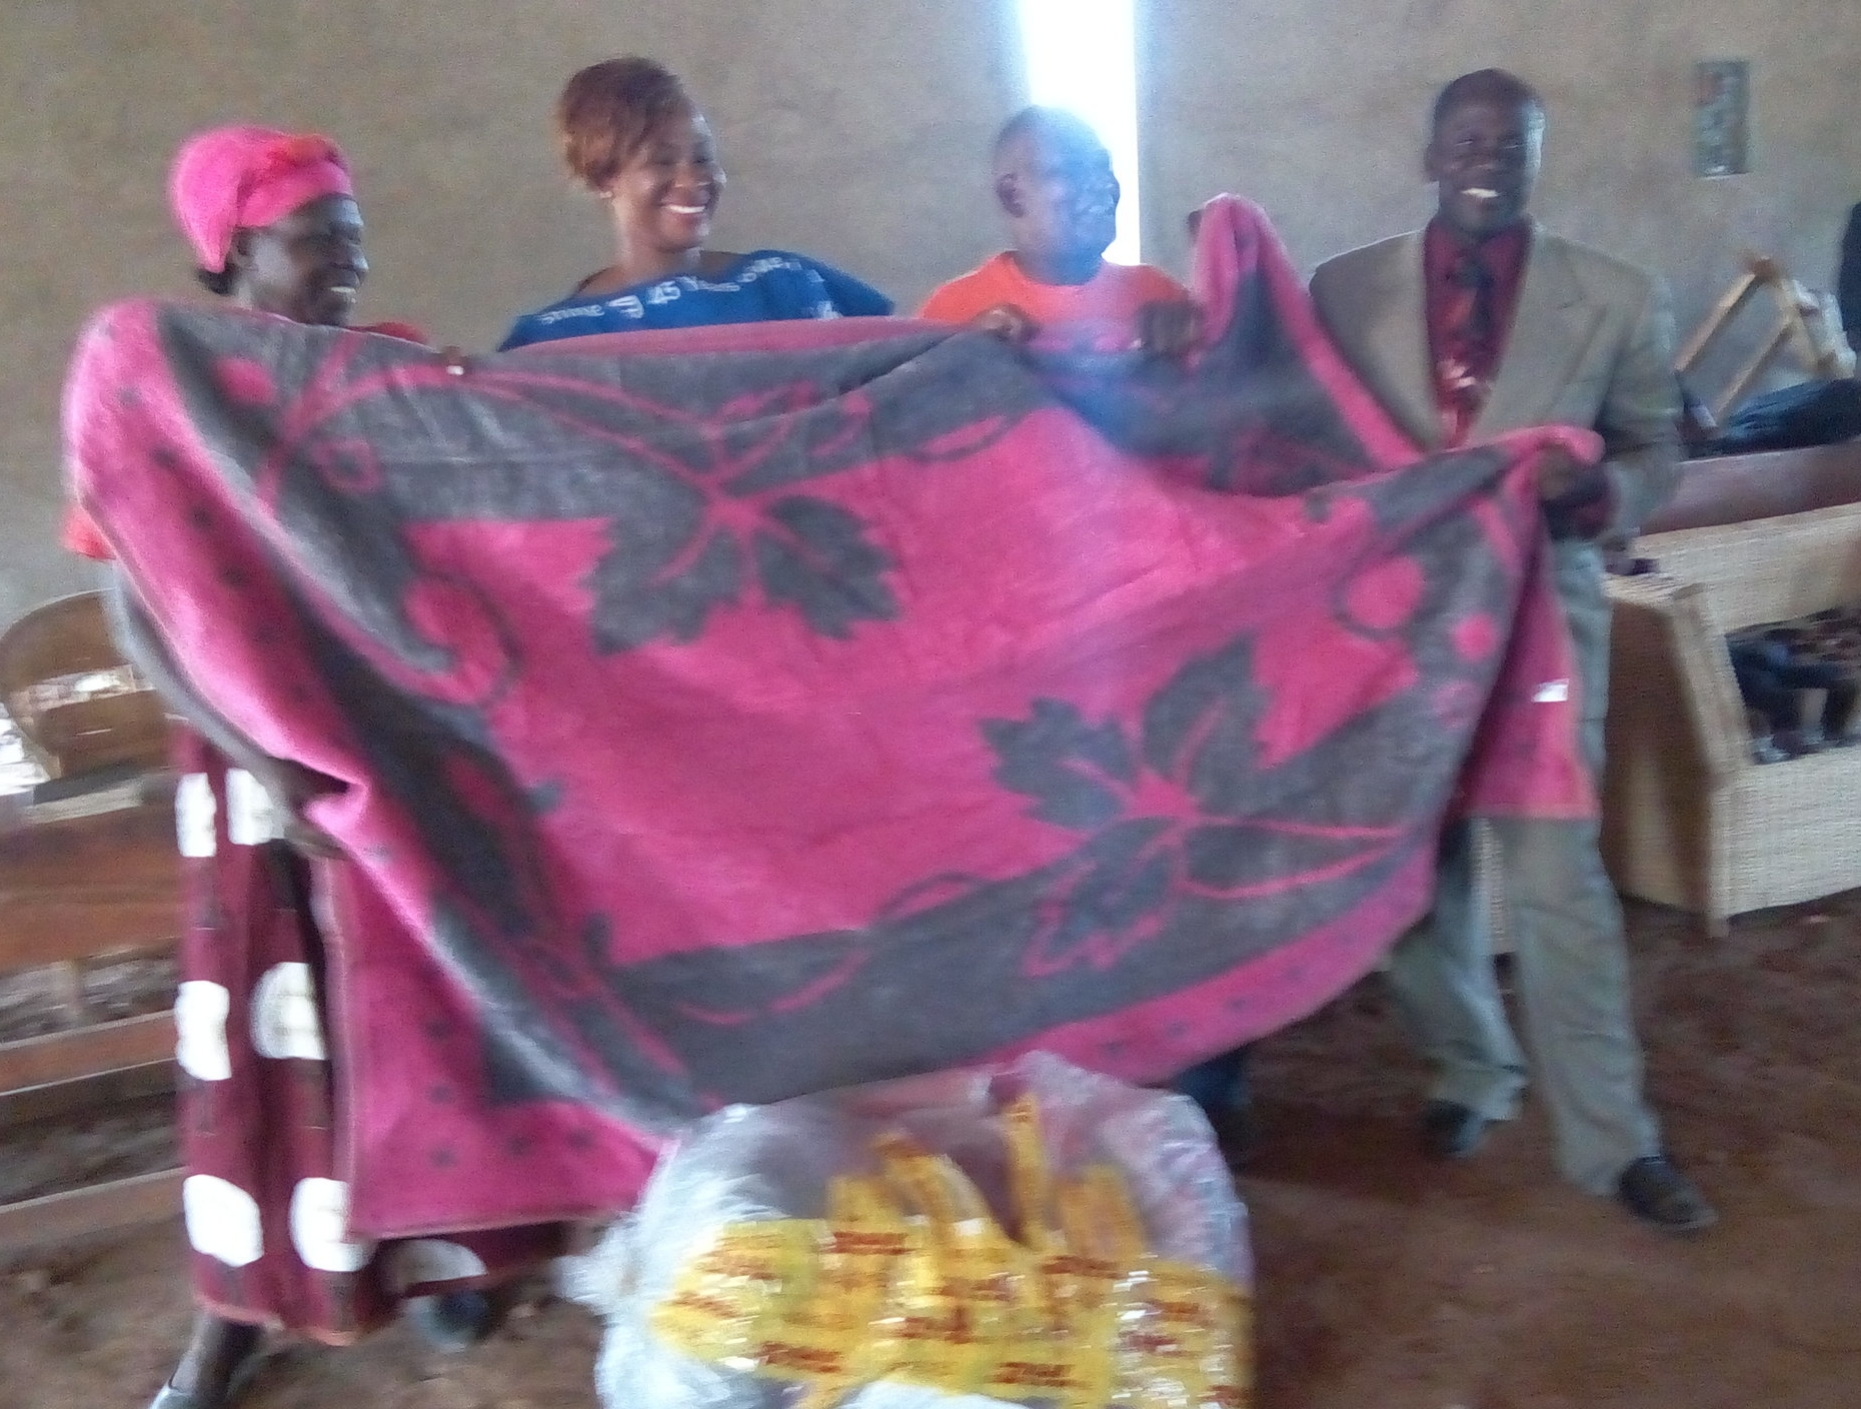 Some blankets were given for children in need.